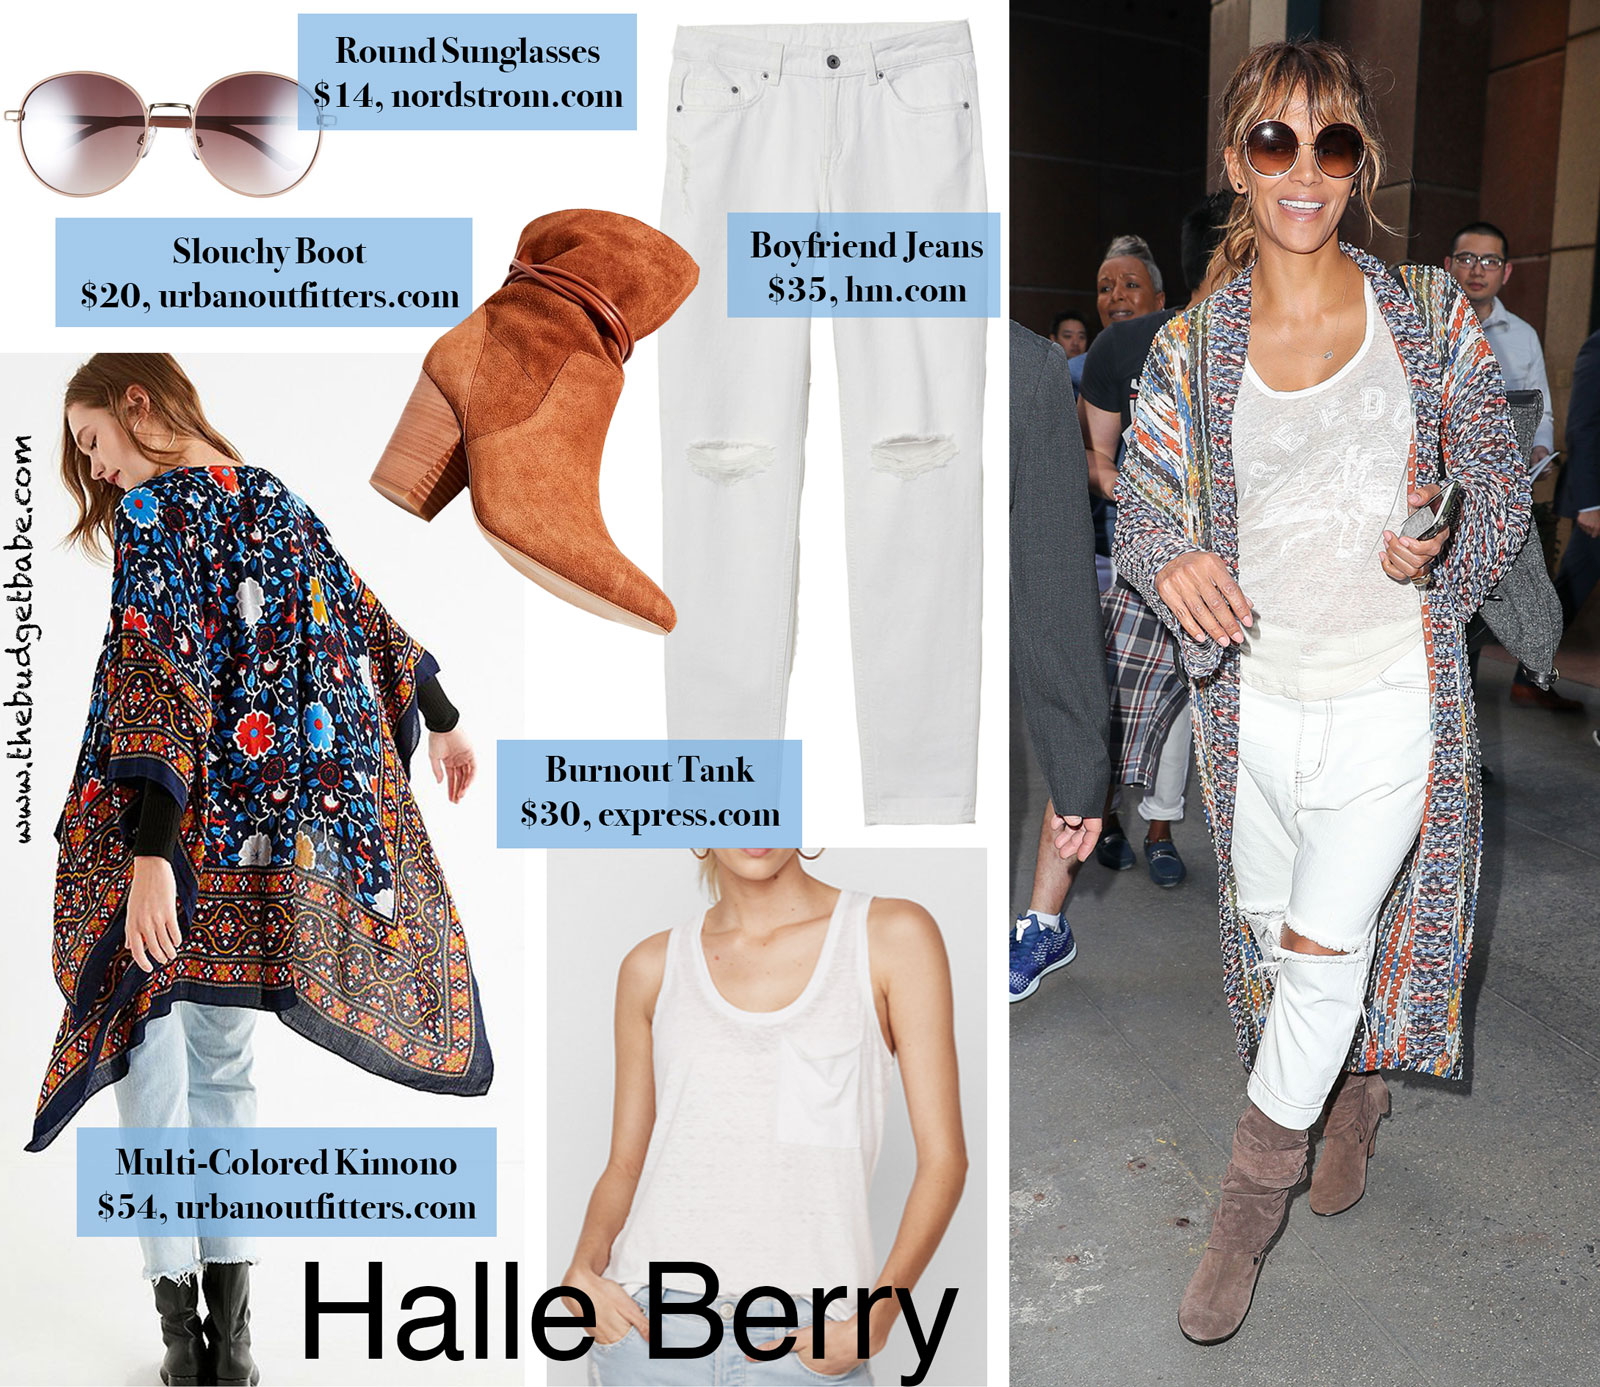 Halle Berry's ONETEASPOON Boyfriend Jeans Look for Less